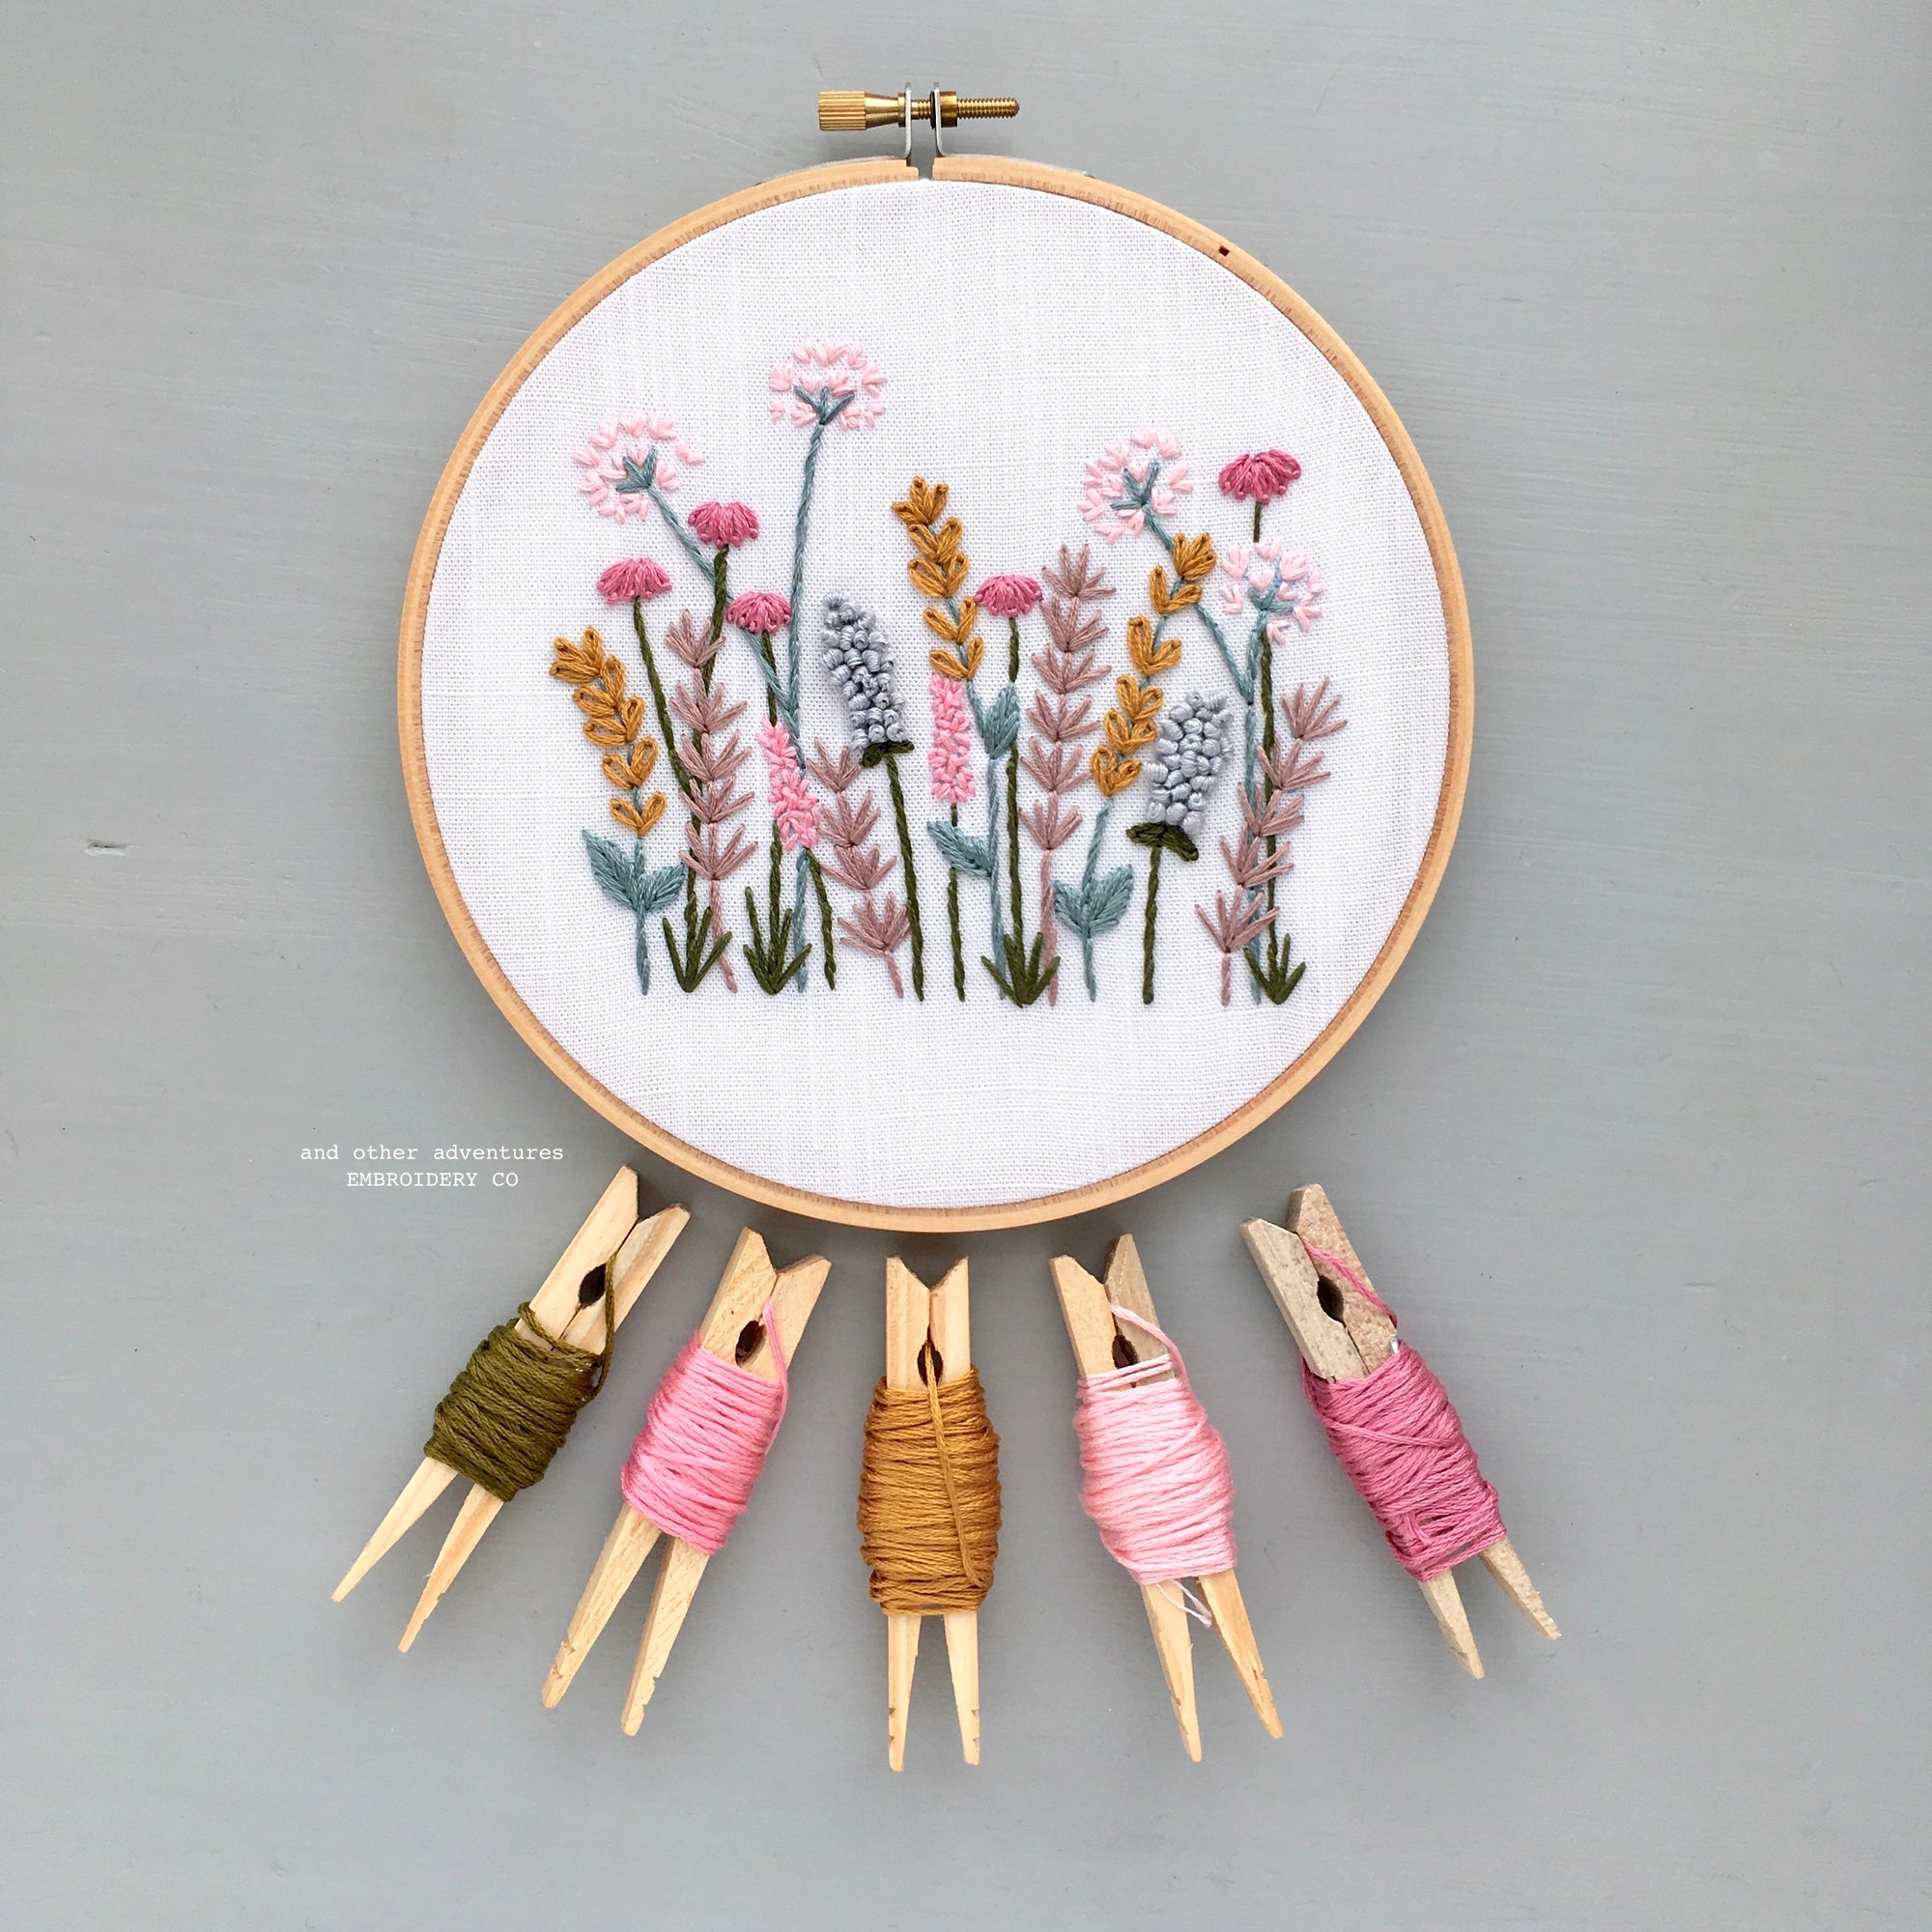 Hand Embroidery Kit - Spring Meadow